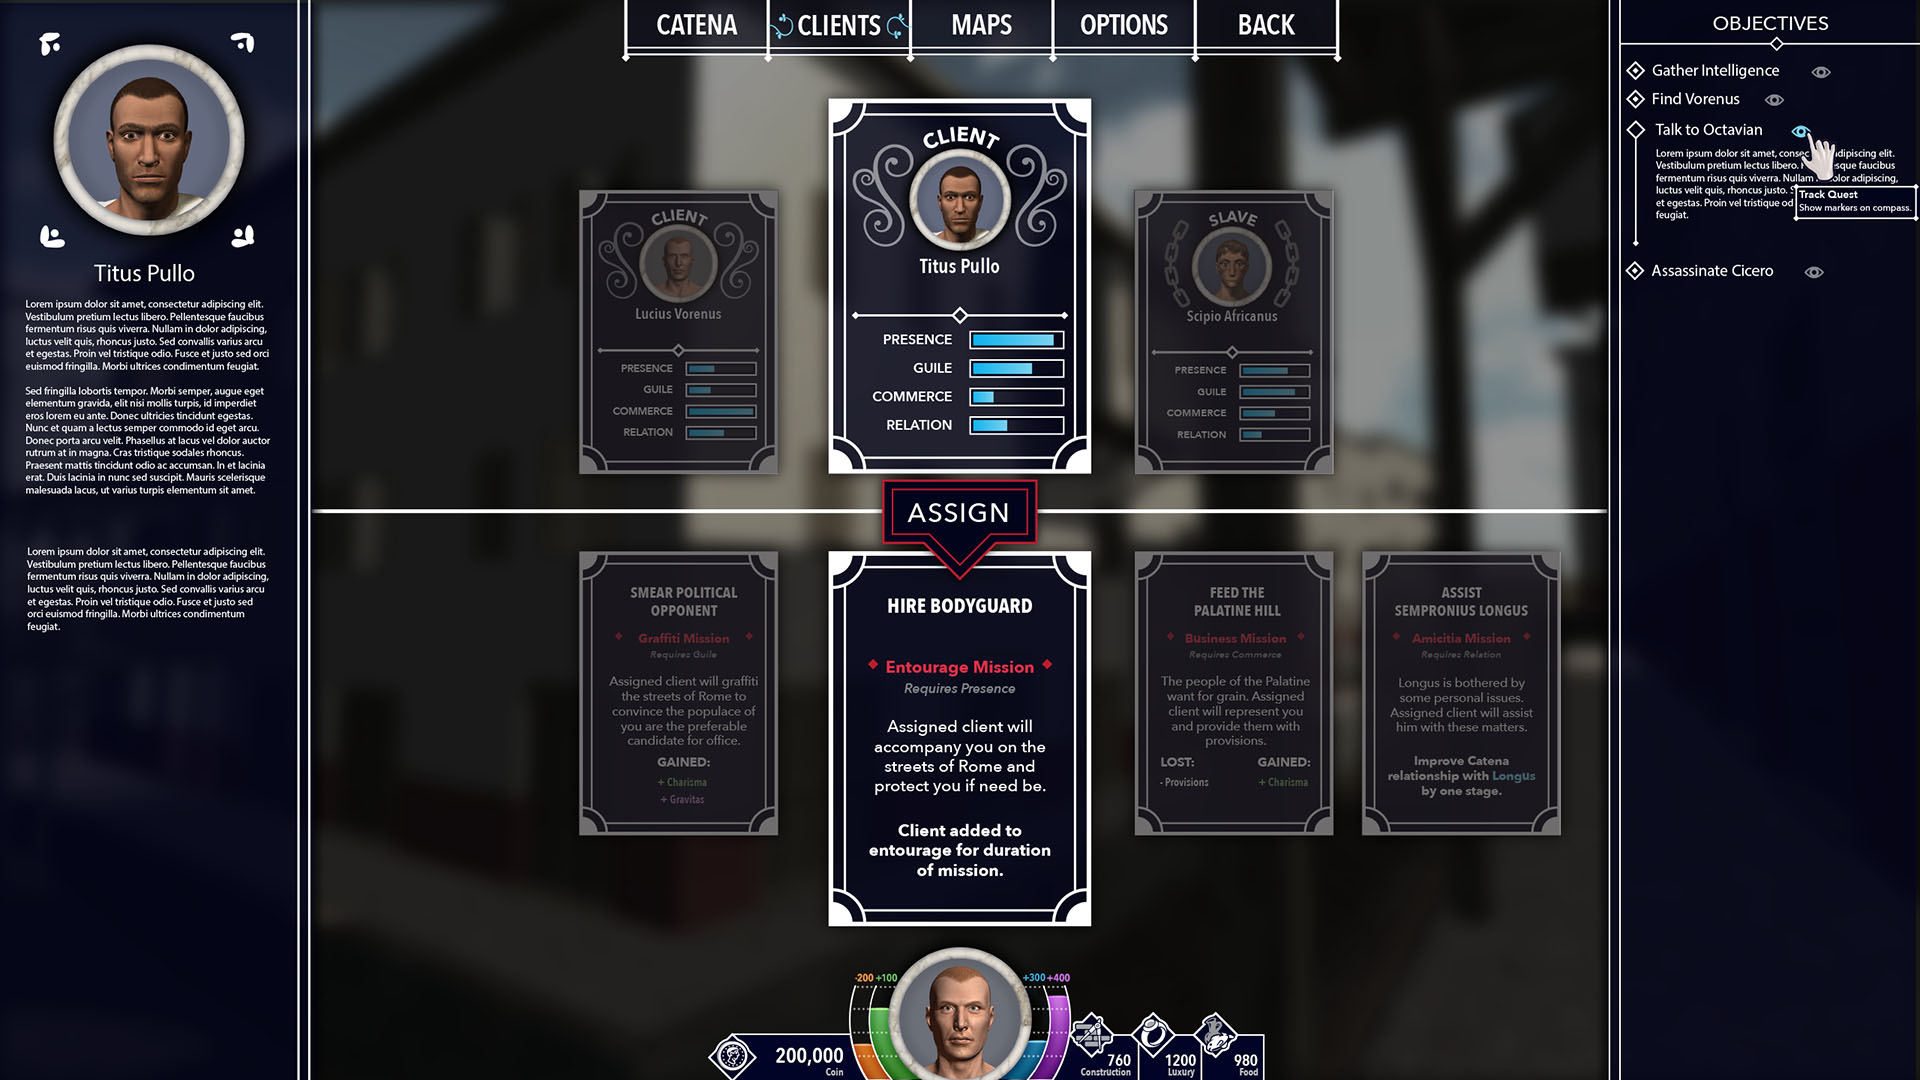 A mockup of the client system. As a wealthy Roman, the player would use their clients to complete tasks and gain social status.